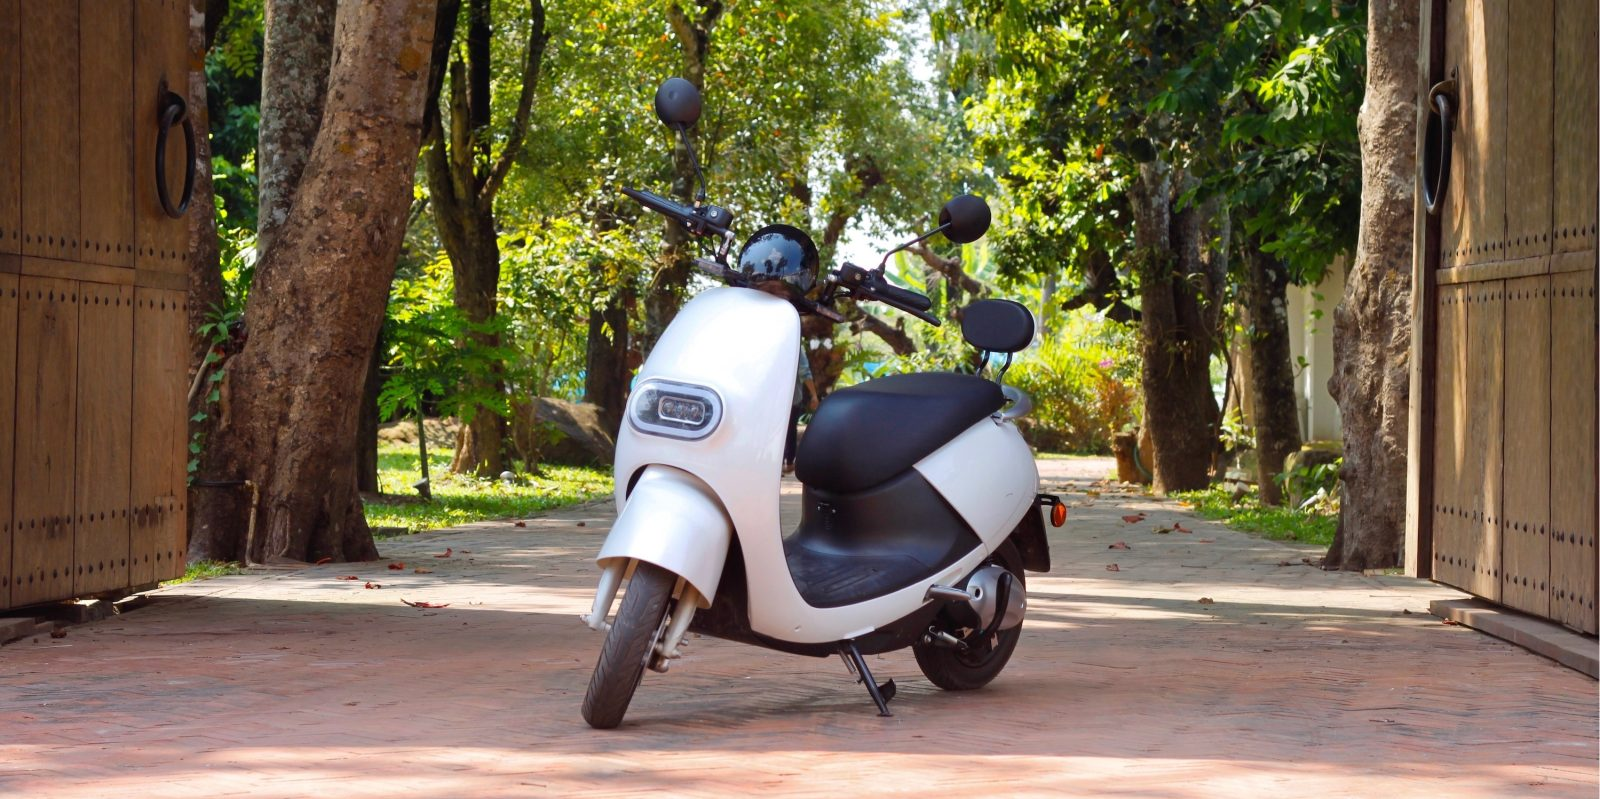 Swag Type S 1 200 Electric Scooter Goes 35 Mph With A